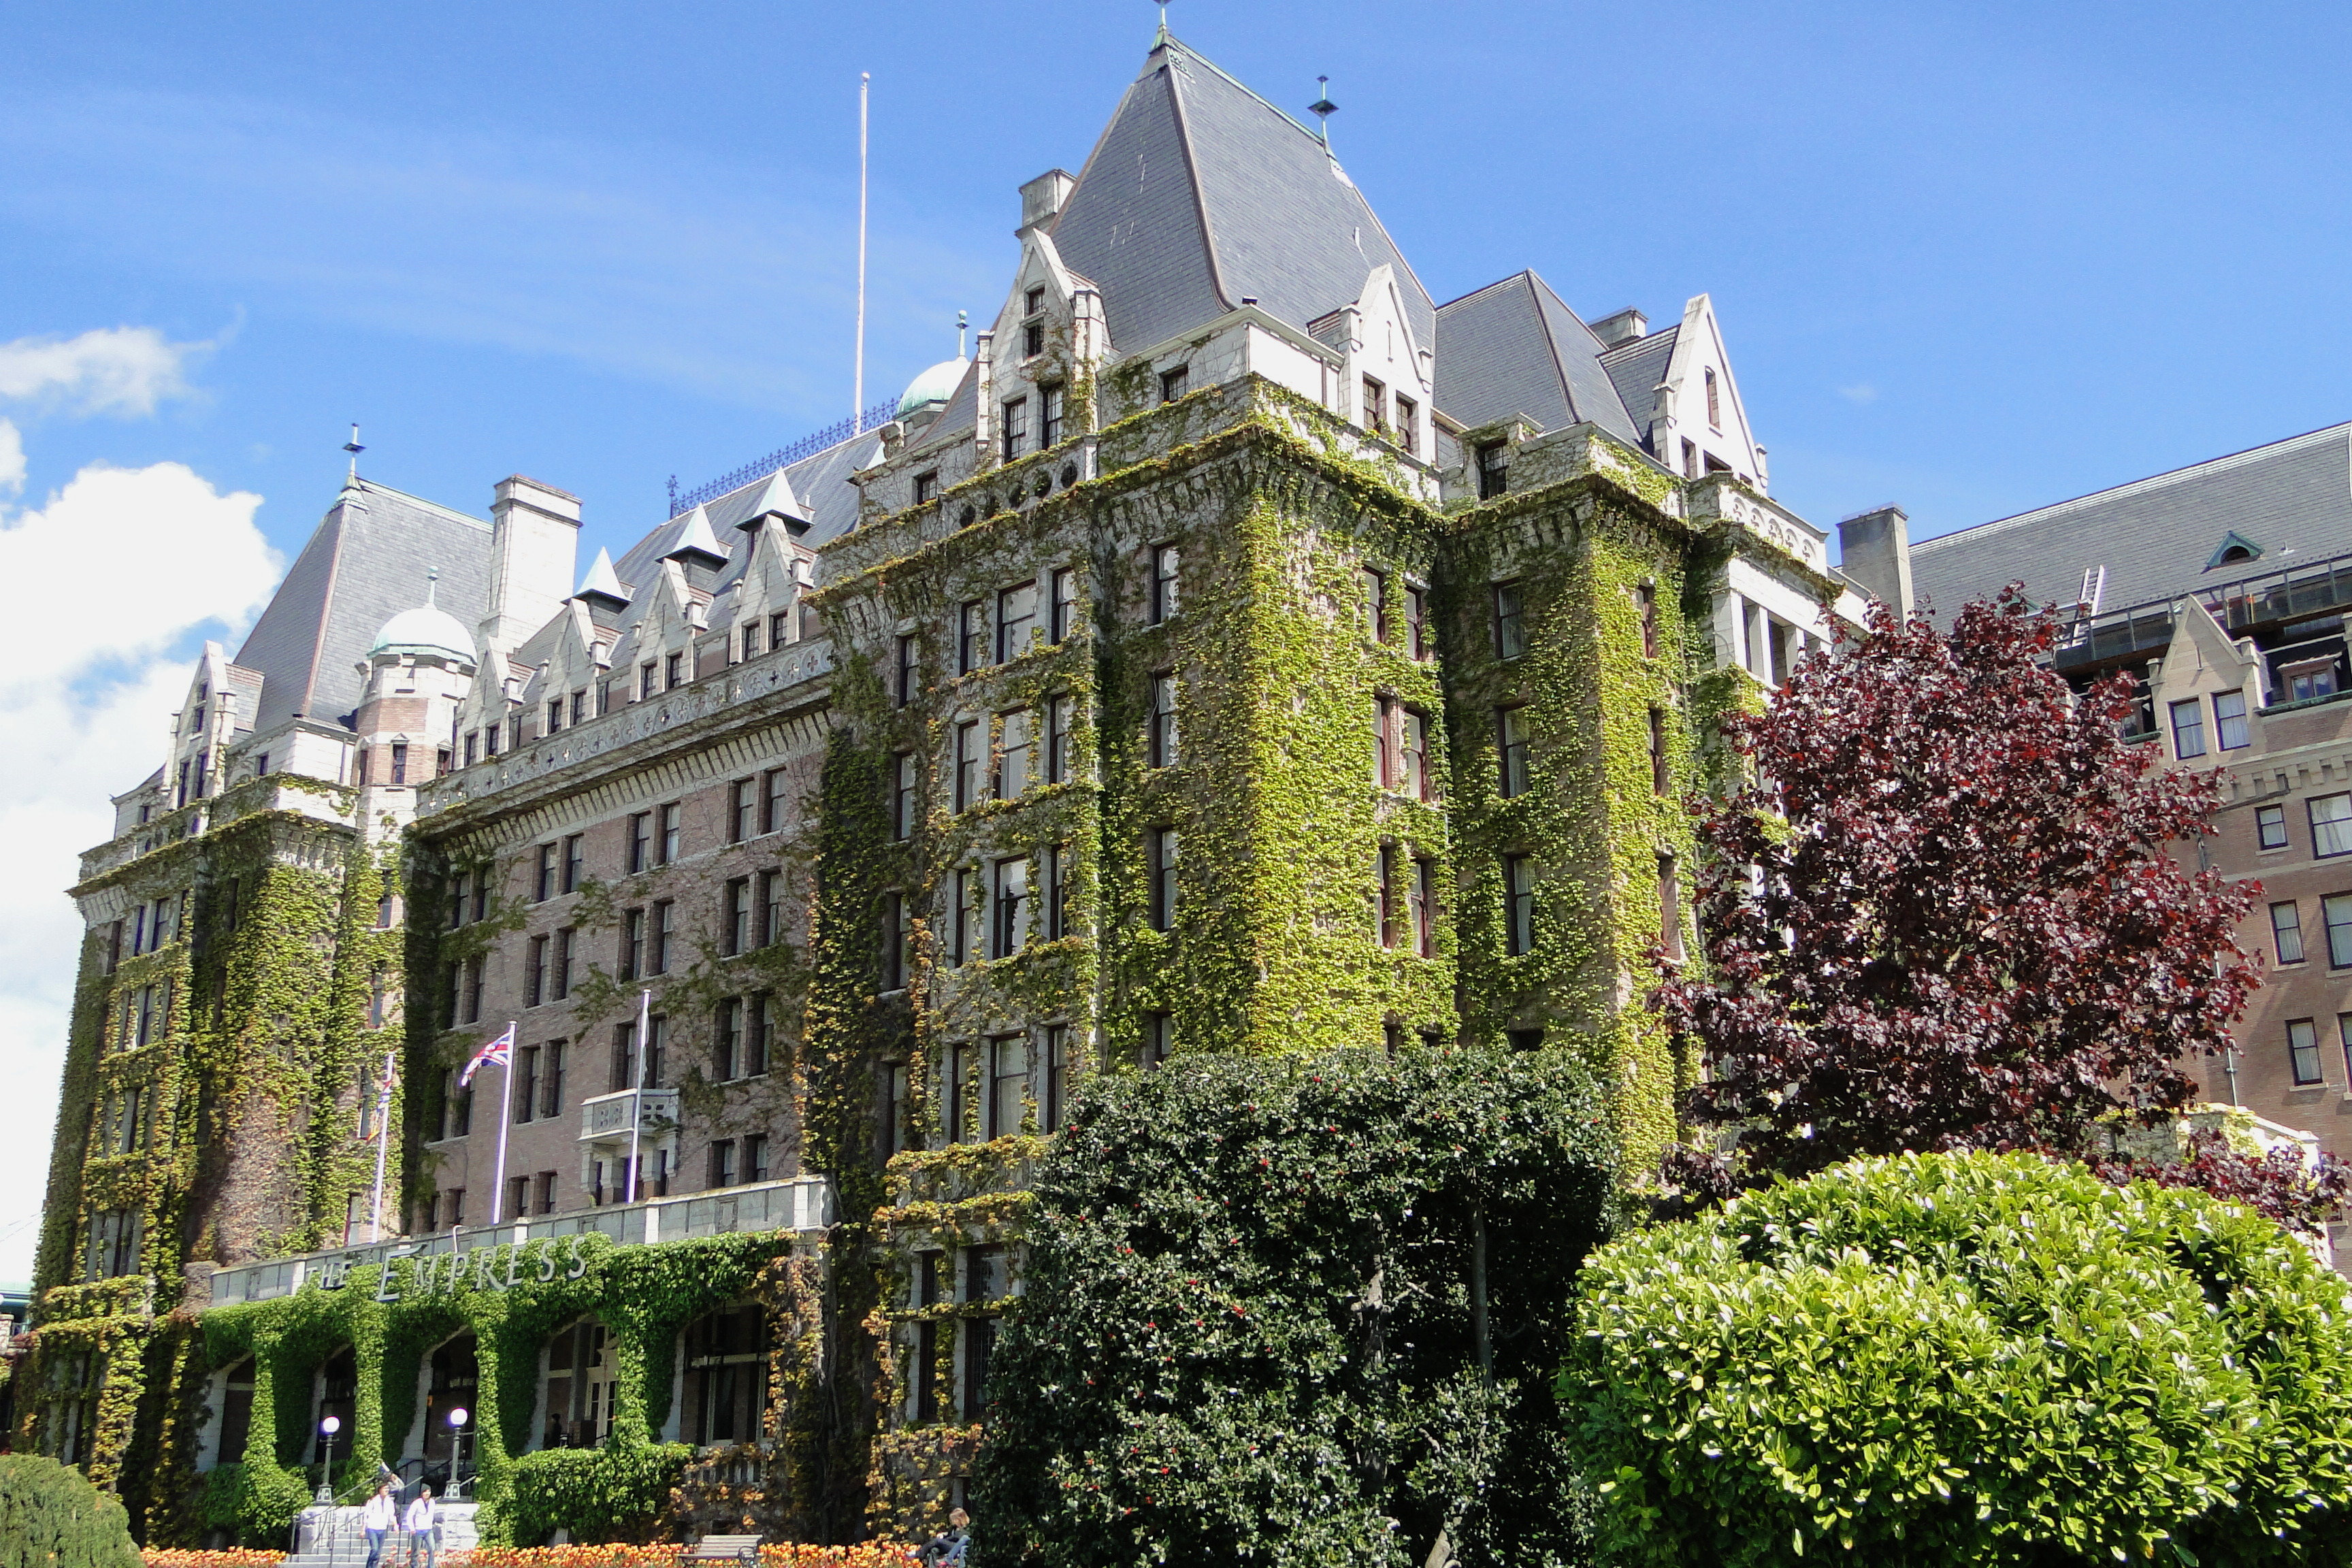 1000 images about places i want to visit on pinterest for Best boutique hotels victoria bc